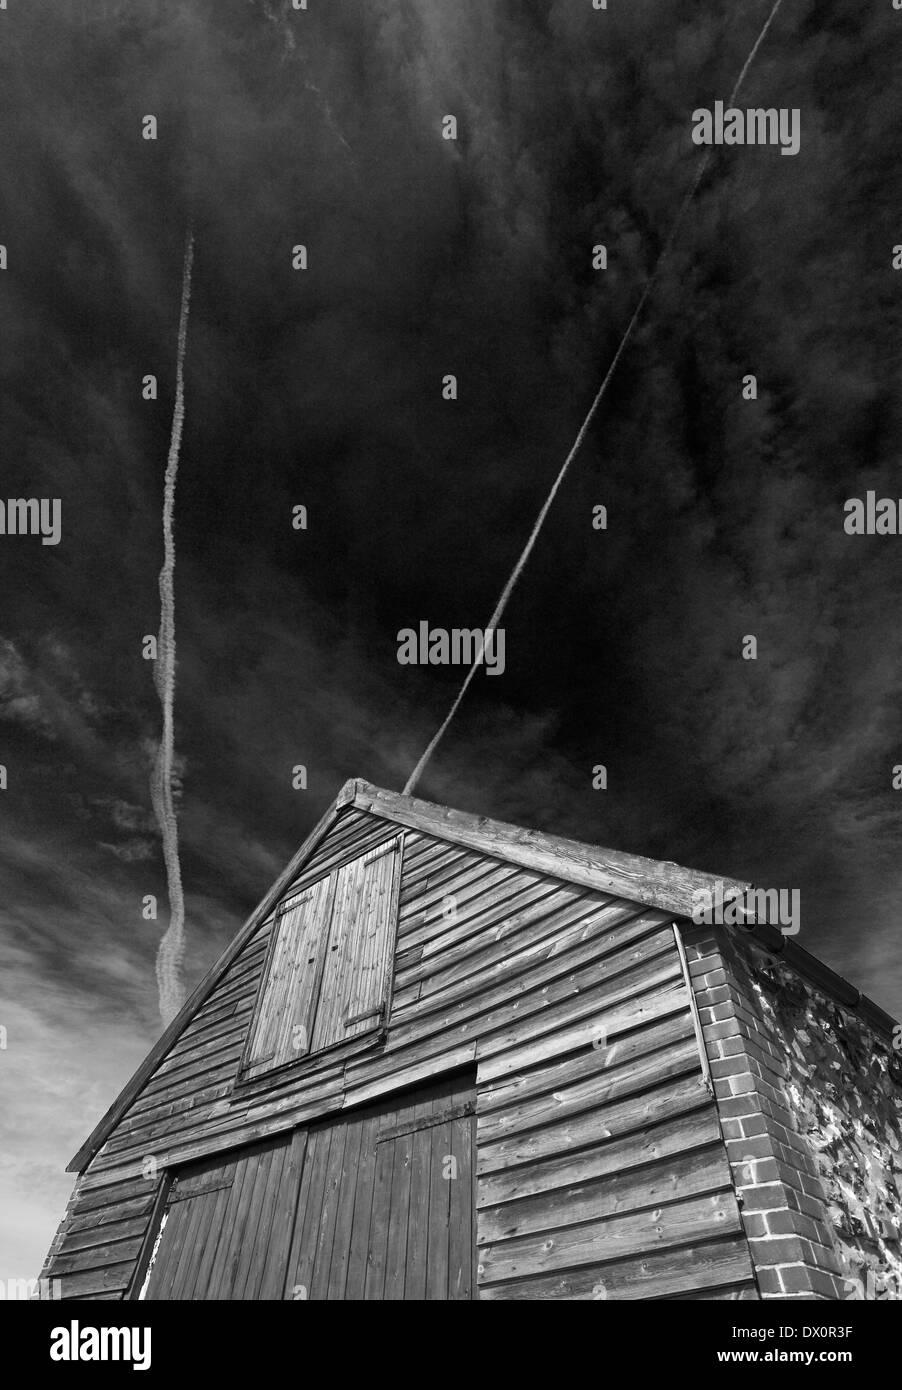 Coal Barn at Thornham on the Norfolk coast against the sky. - Stock Image